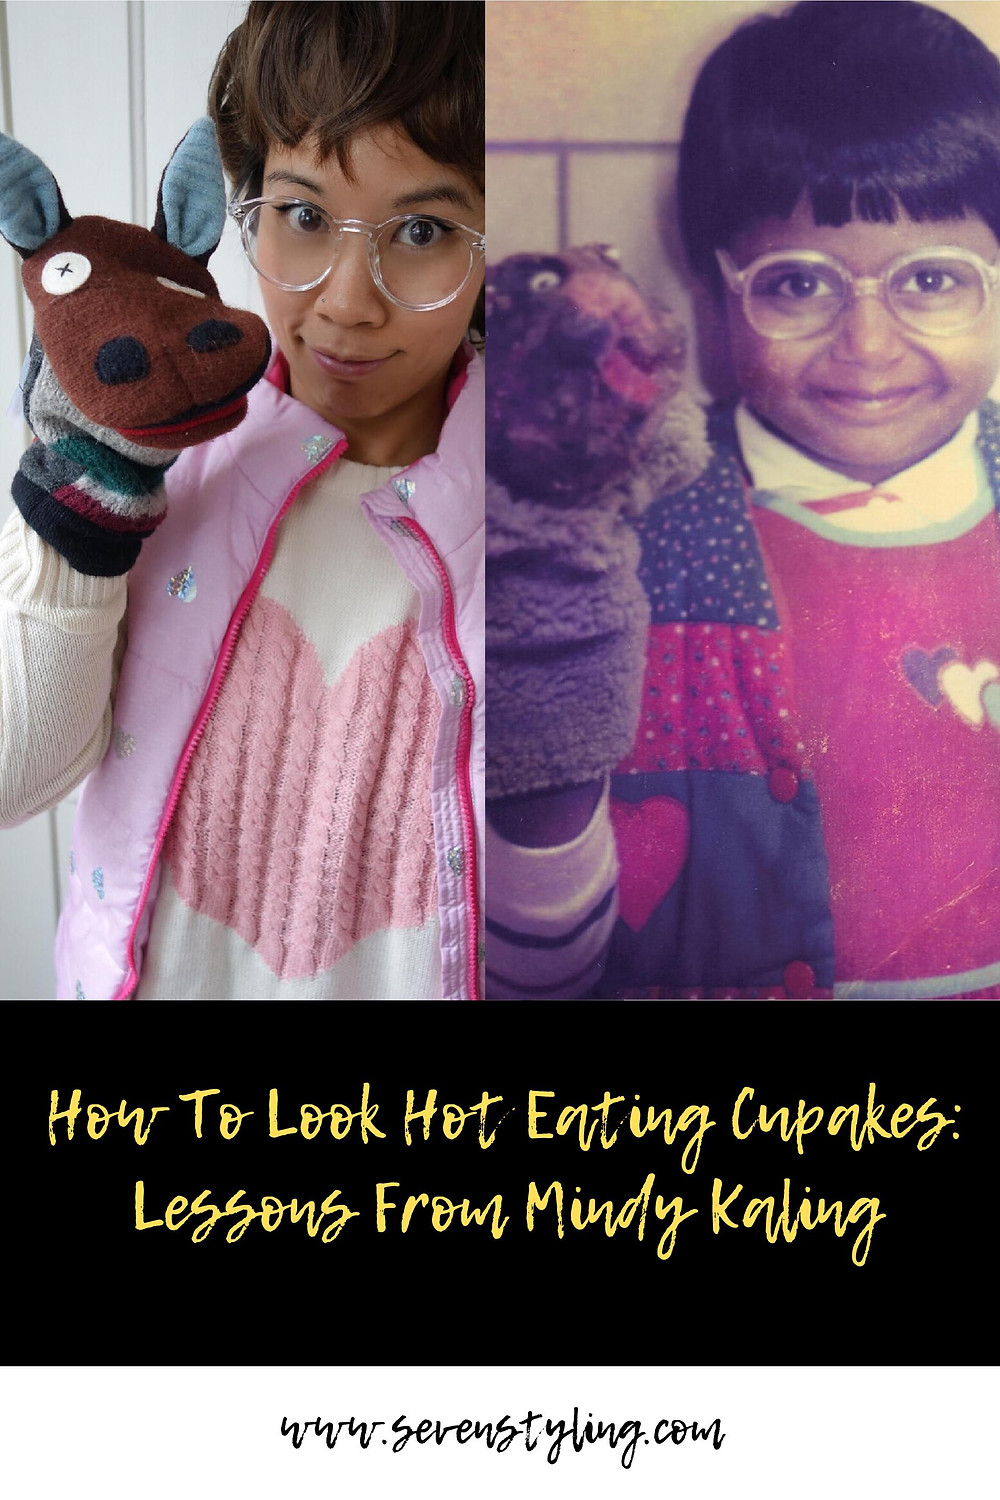 How To Look Hot Eating Cupcakes: Lessons From Mindy Kaling